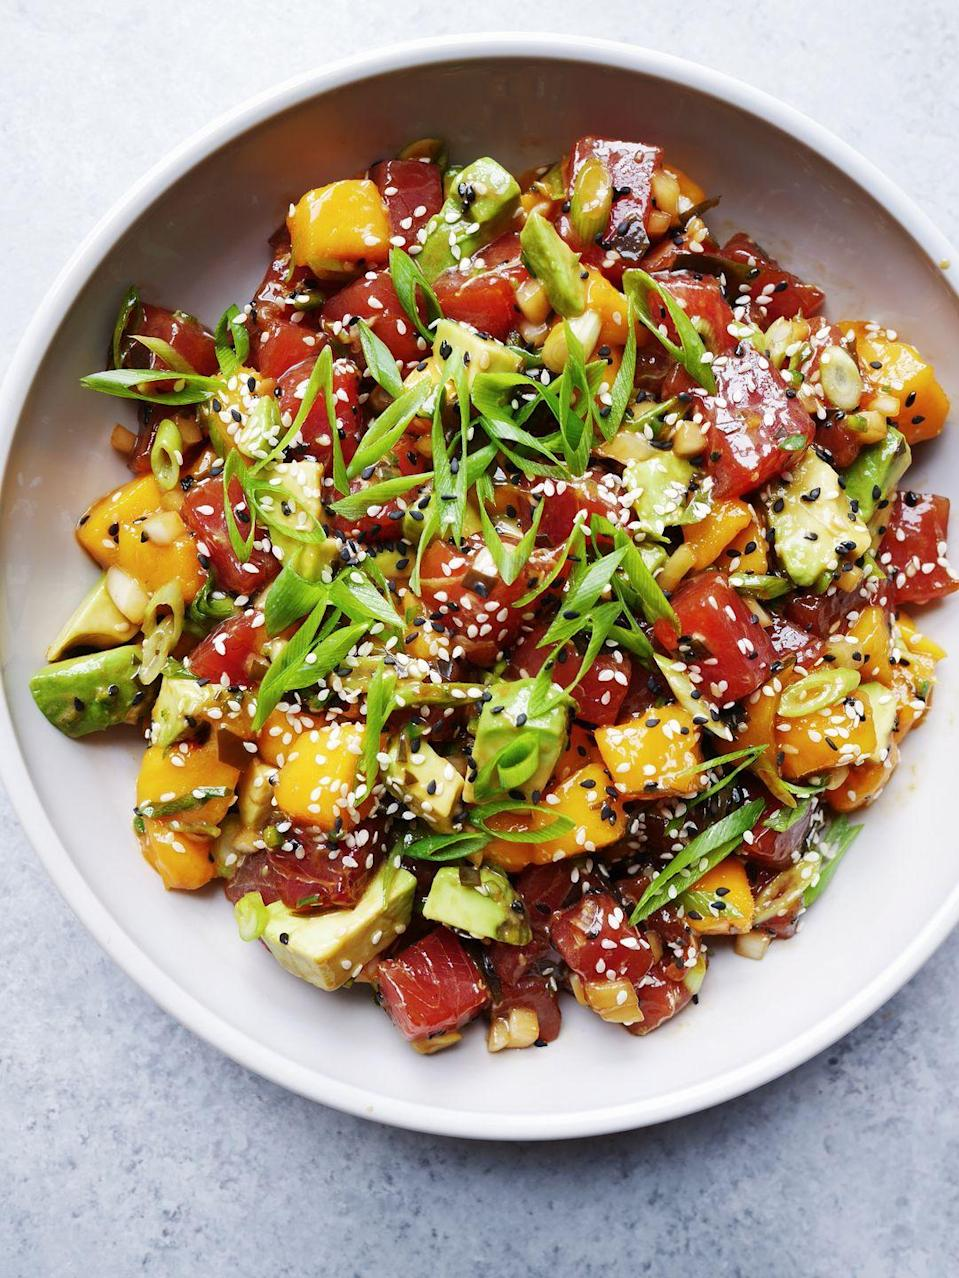 """<p>This poke salad is way better than anything you'll find on a restaurant menu.</p><p>Get the recipe from <a href=""""https://www.delish.com/cooking/recipe-ideas/a21084381/best-poke-salad-recipe/"""" rel=""""nofollow noopener"""" target=""""_blank"""" data-ylk=""""slk:Delish"""" class=""""link rapid-noclick-resp"""">Delish</a>.</p>"""